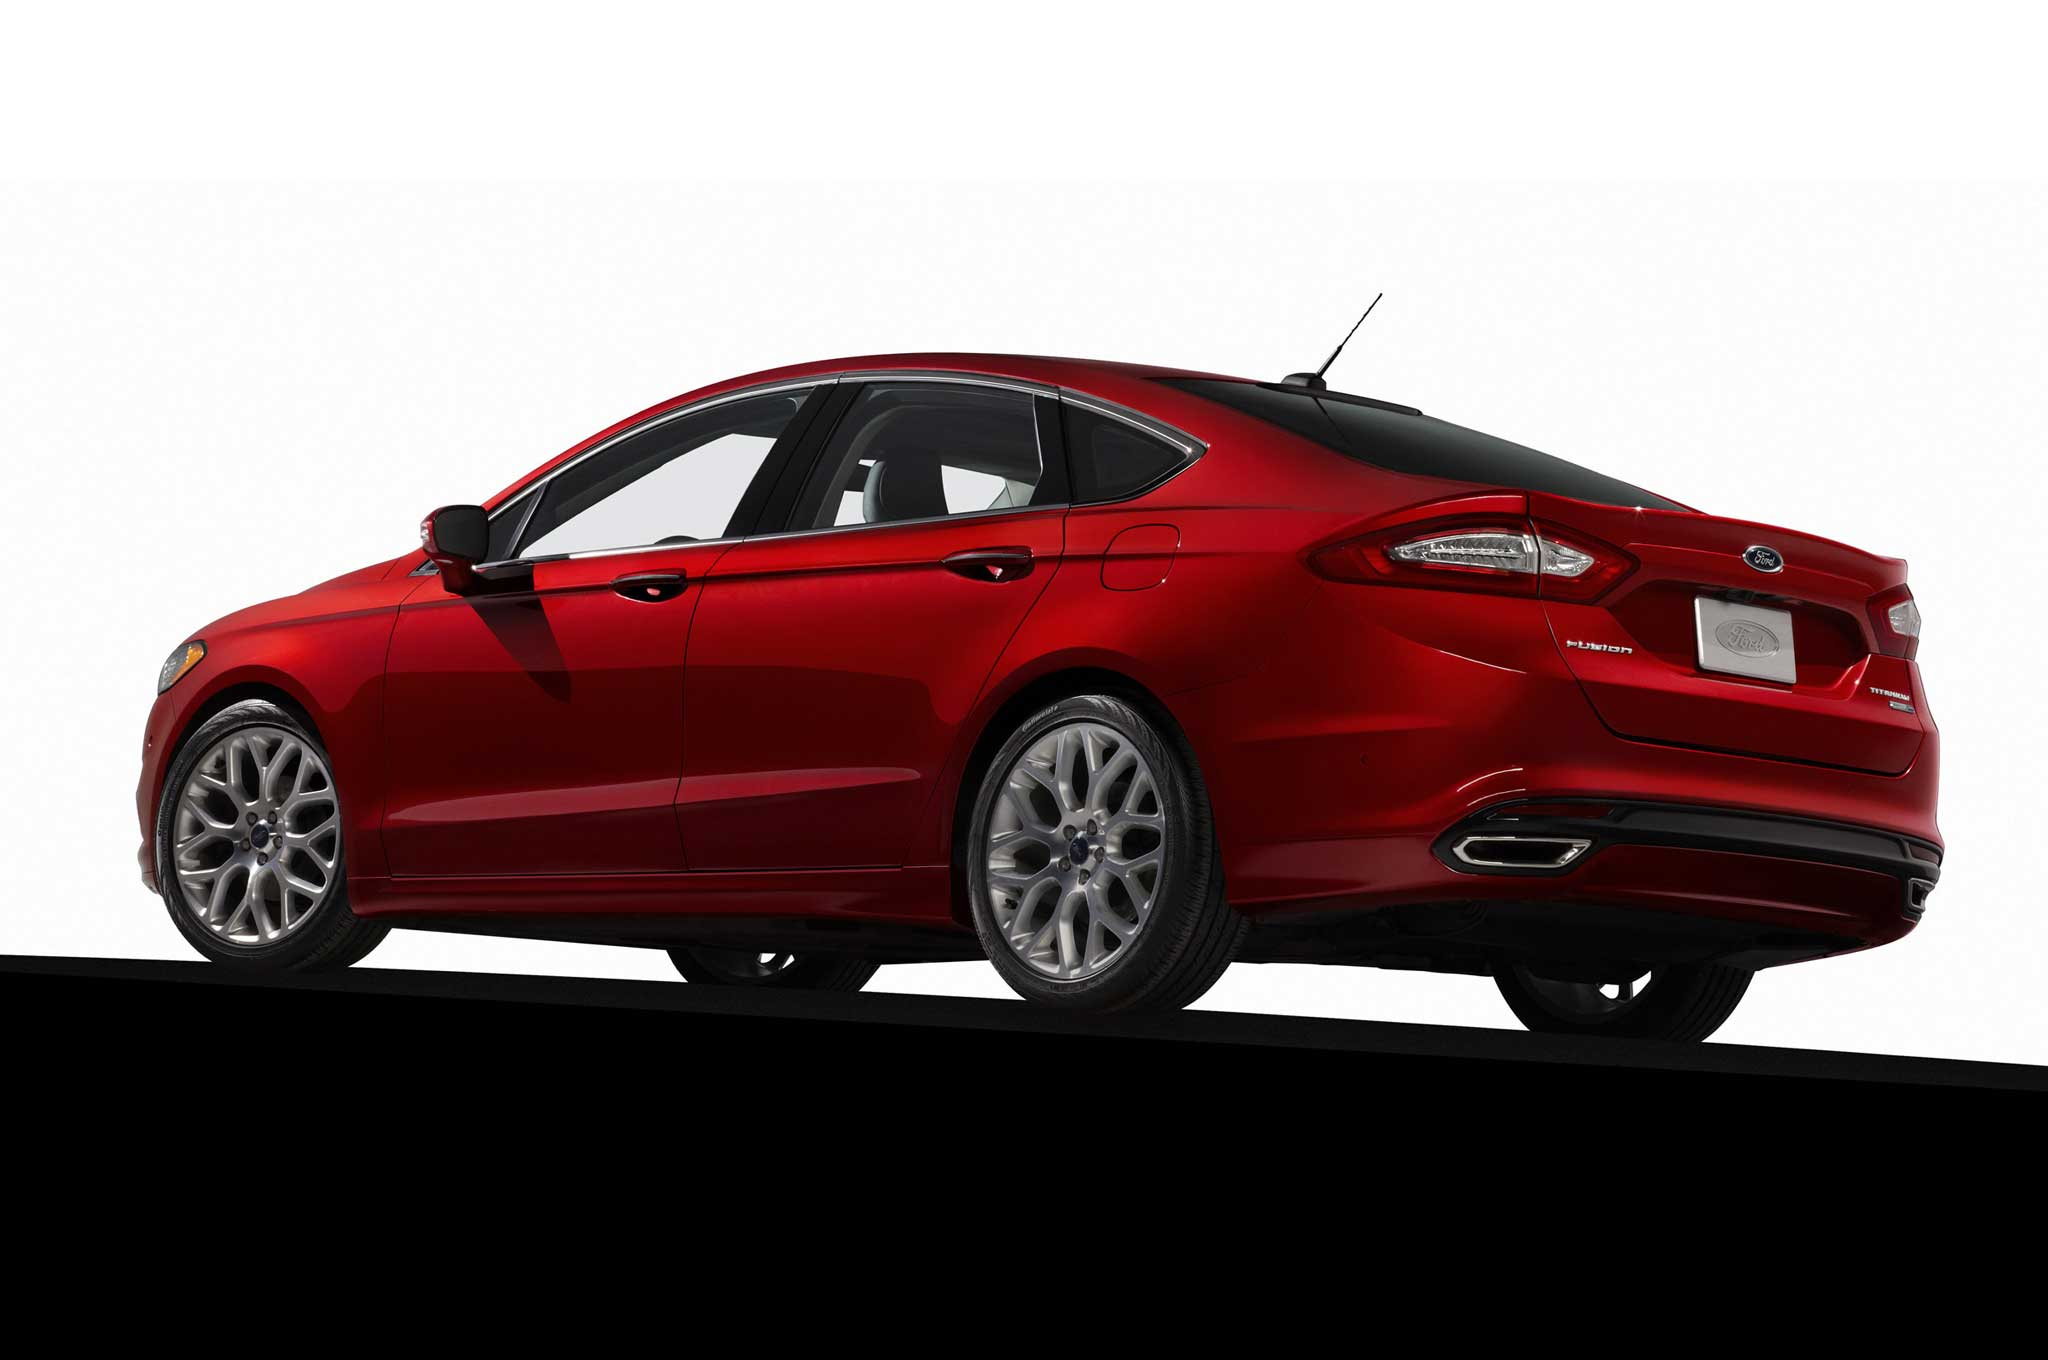 2014 ford fusion se 1 5 ecoboost epa ratings revealed. Black Bedroom Furniture Sets. Home Design Ideas